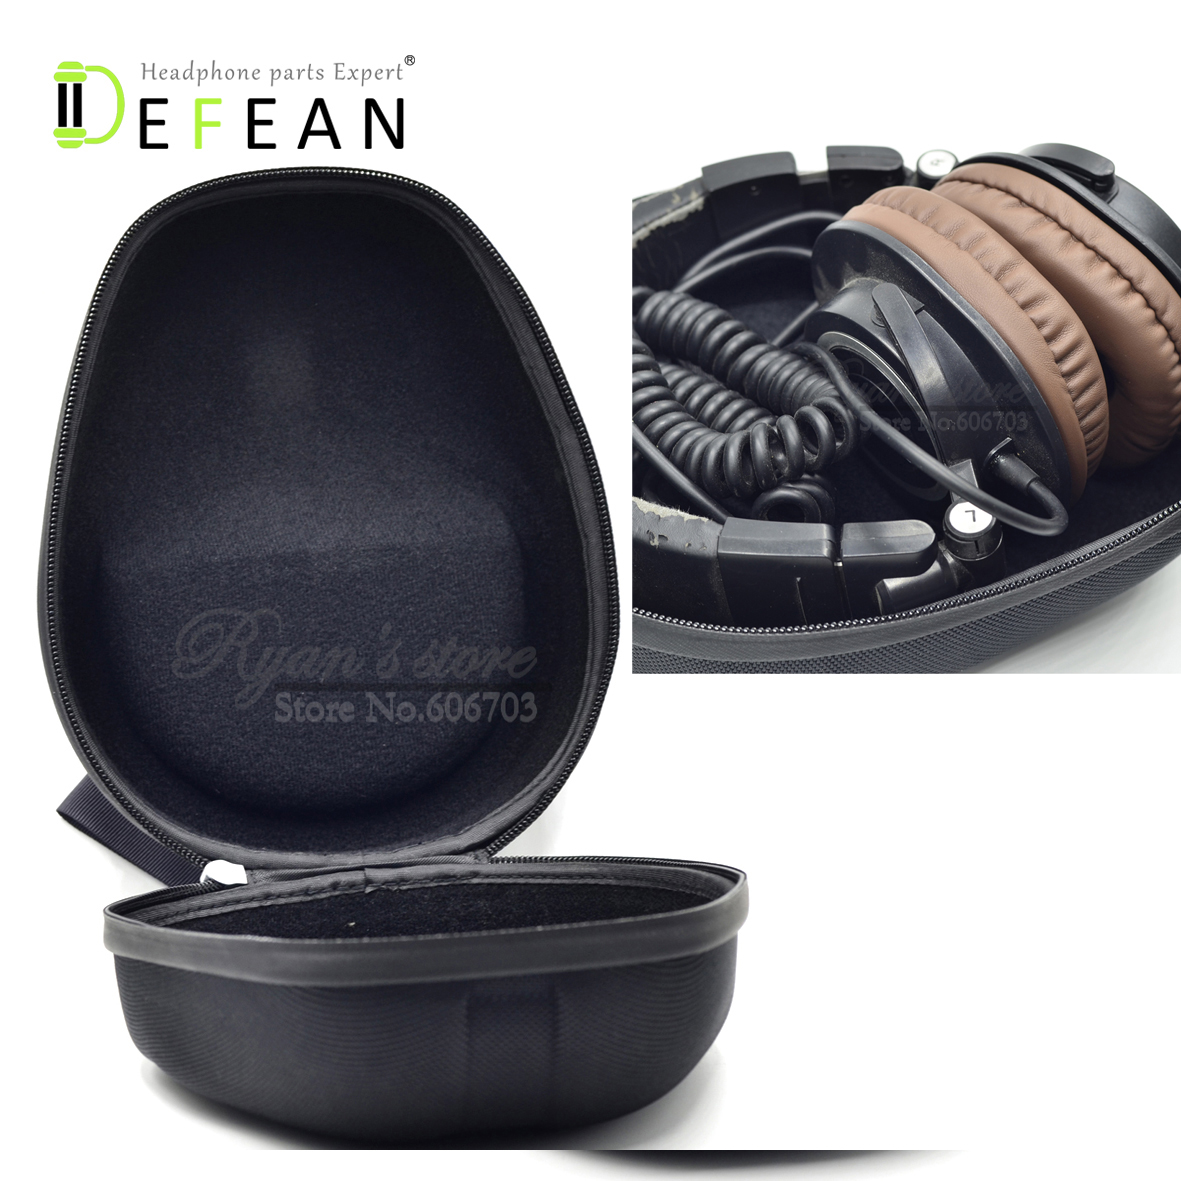 Defean Generic Headphone Case Box Sony Mdr 7506 V6